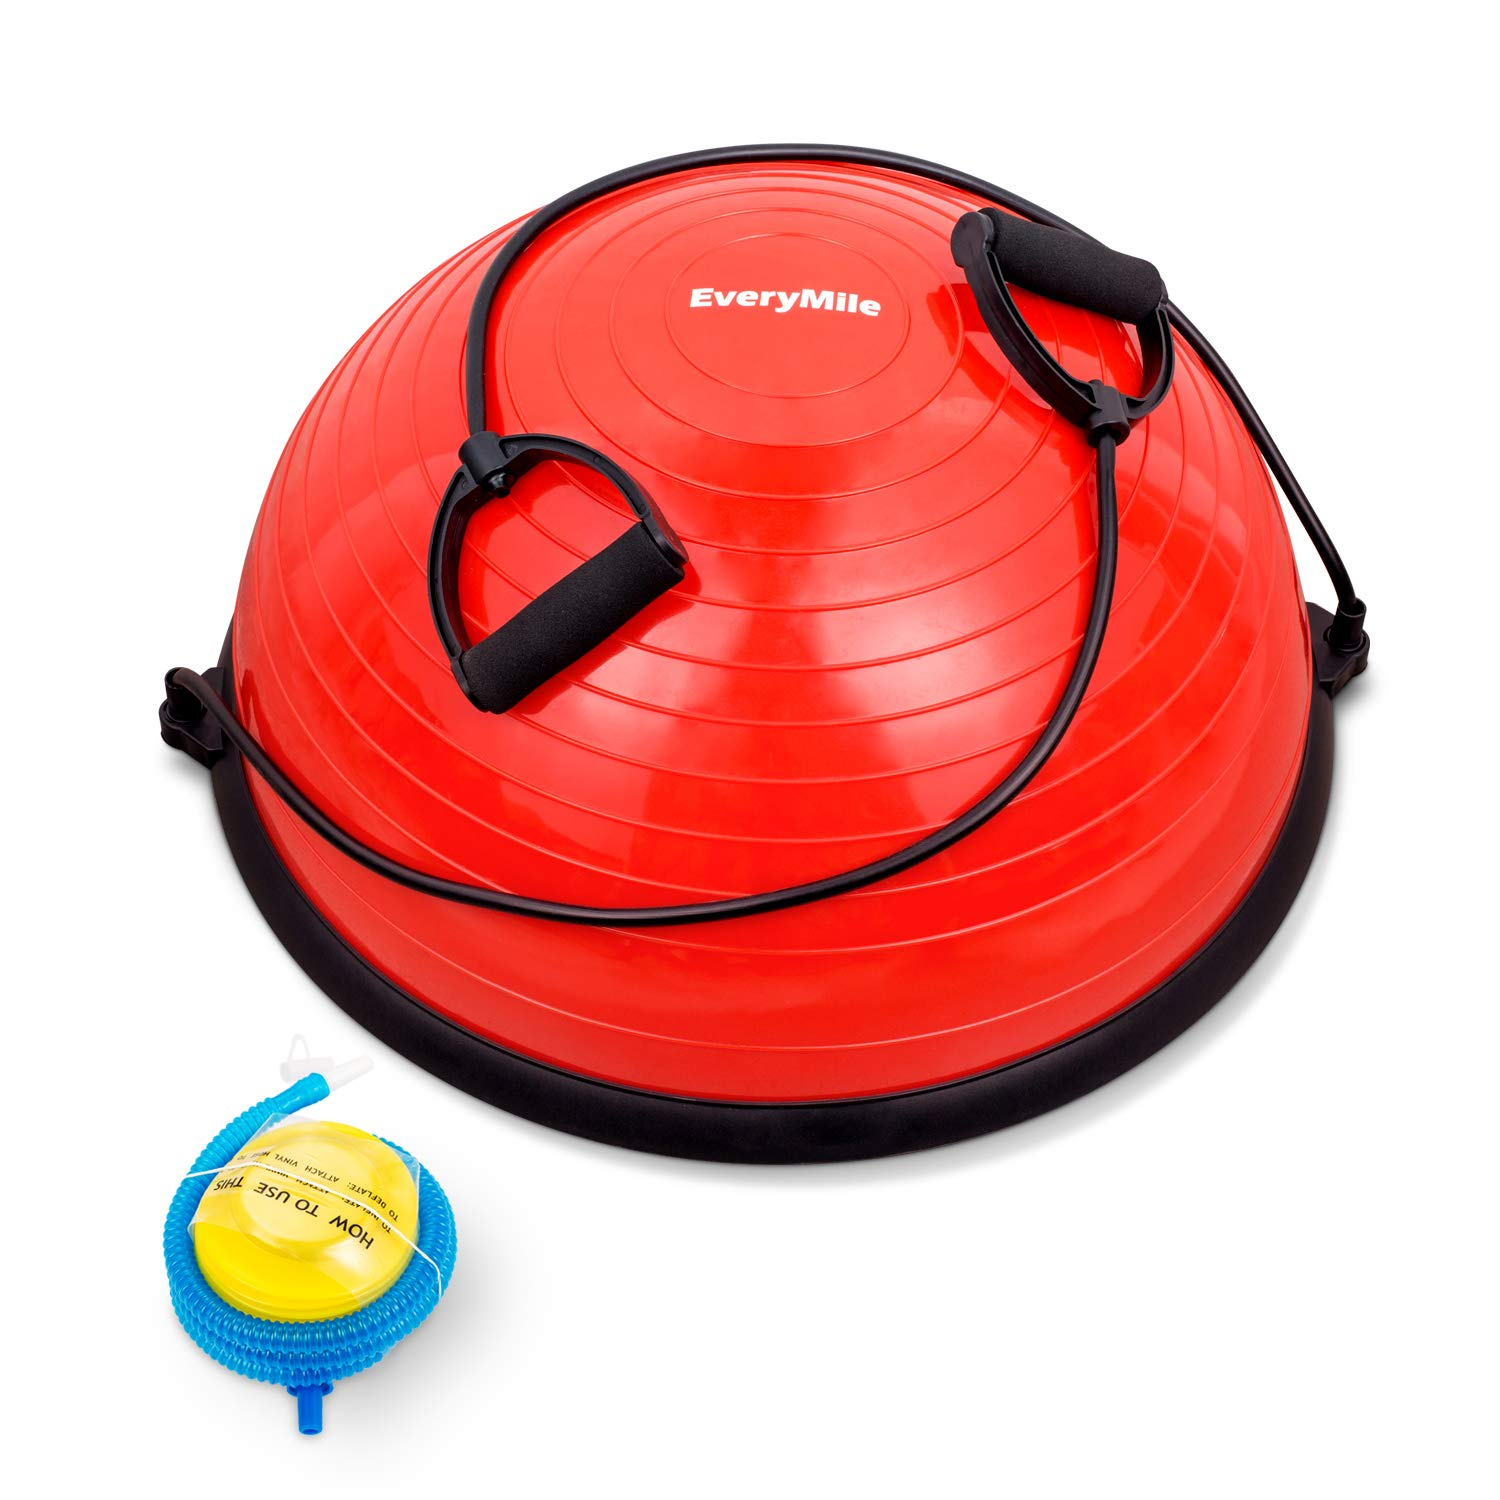 EveryMile Half Ball Balance Trainer Stability Yoga Exercise Ball with Resistance Bands & Pump for Home Gym Core Training Yoga Fitness Ab Strength Workouts, 23 inch Anti-Skid Surface (Red)